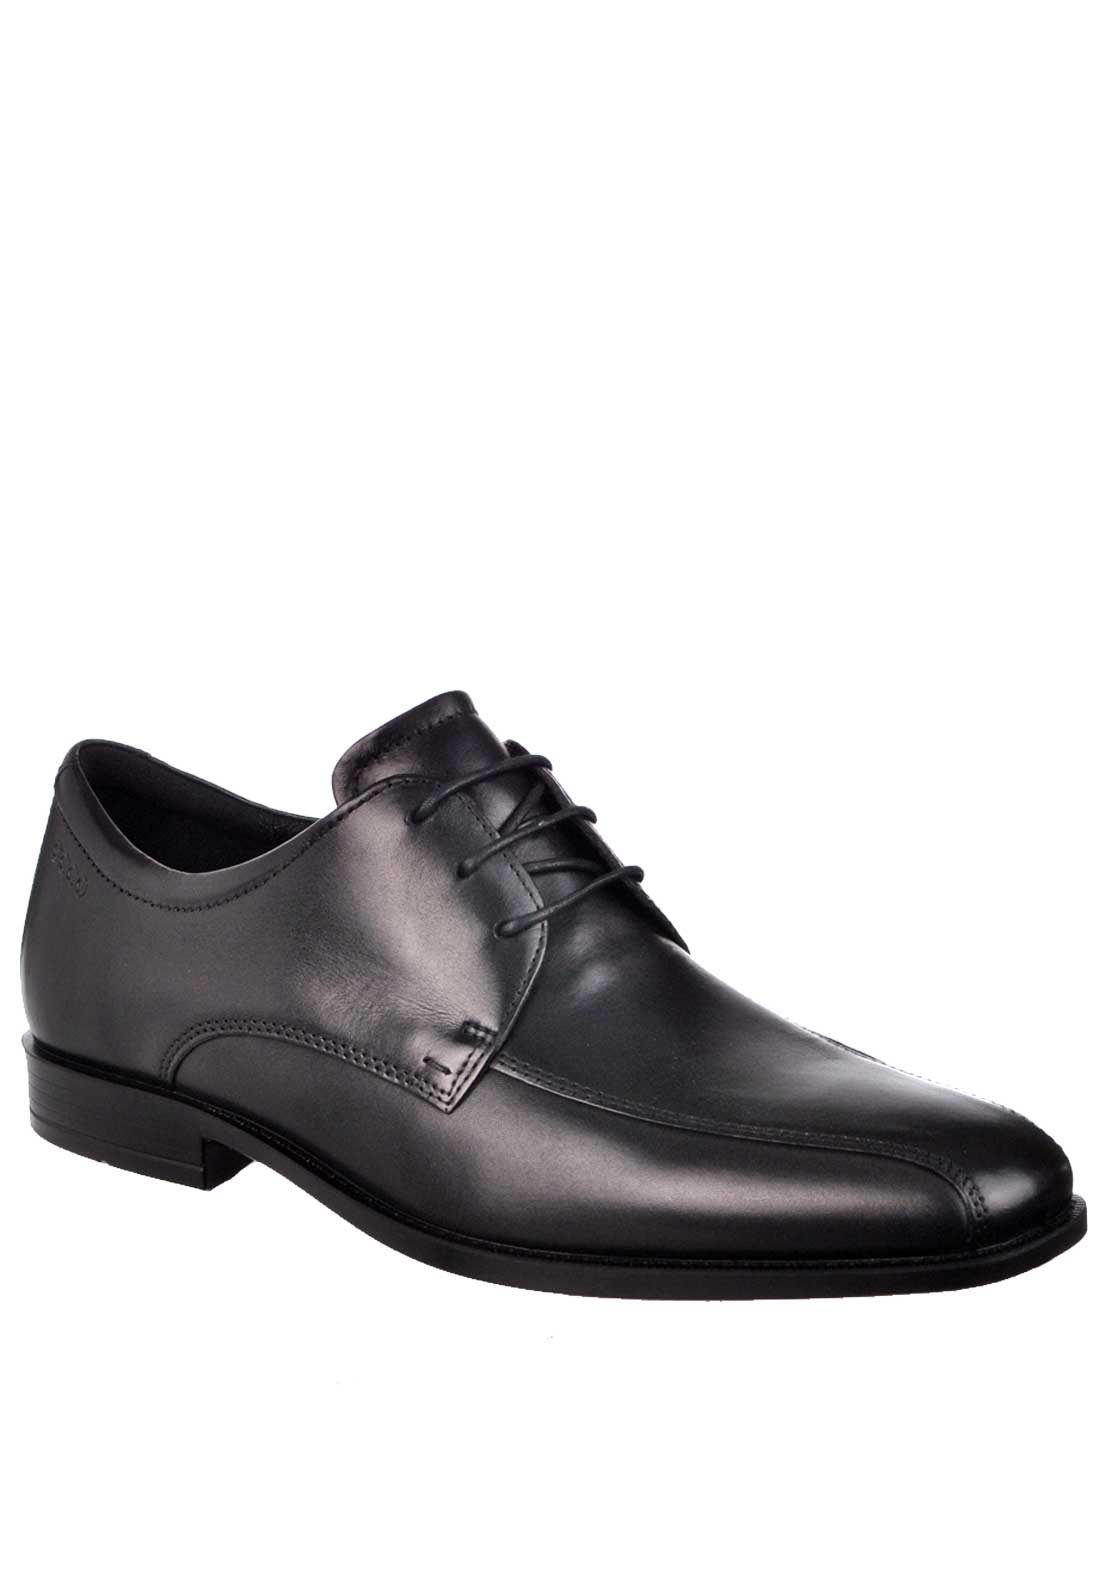 Ecco Mens Edinburgh Formal Lace Up Leather Shoe, Black